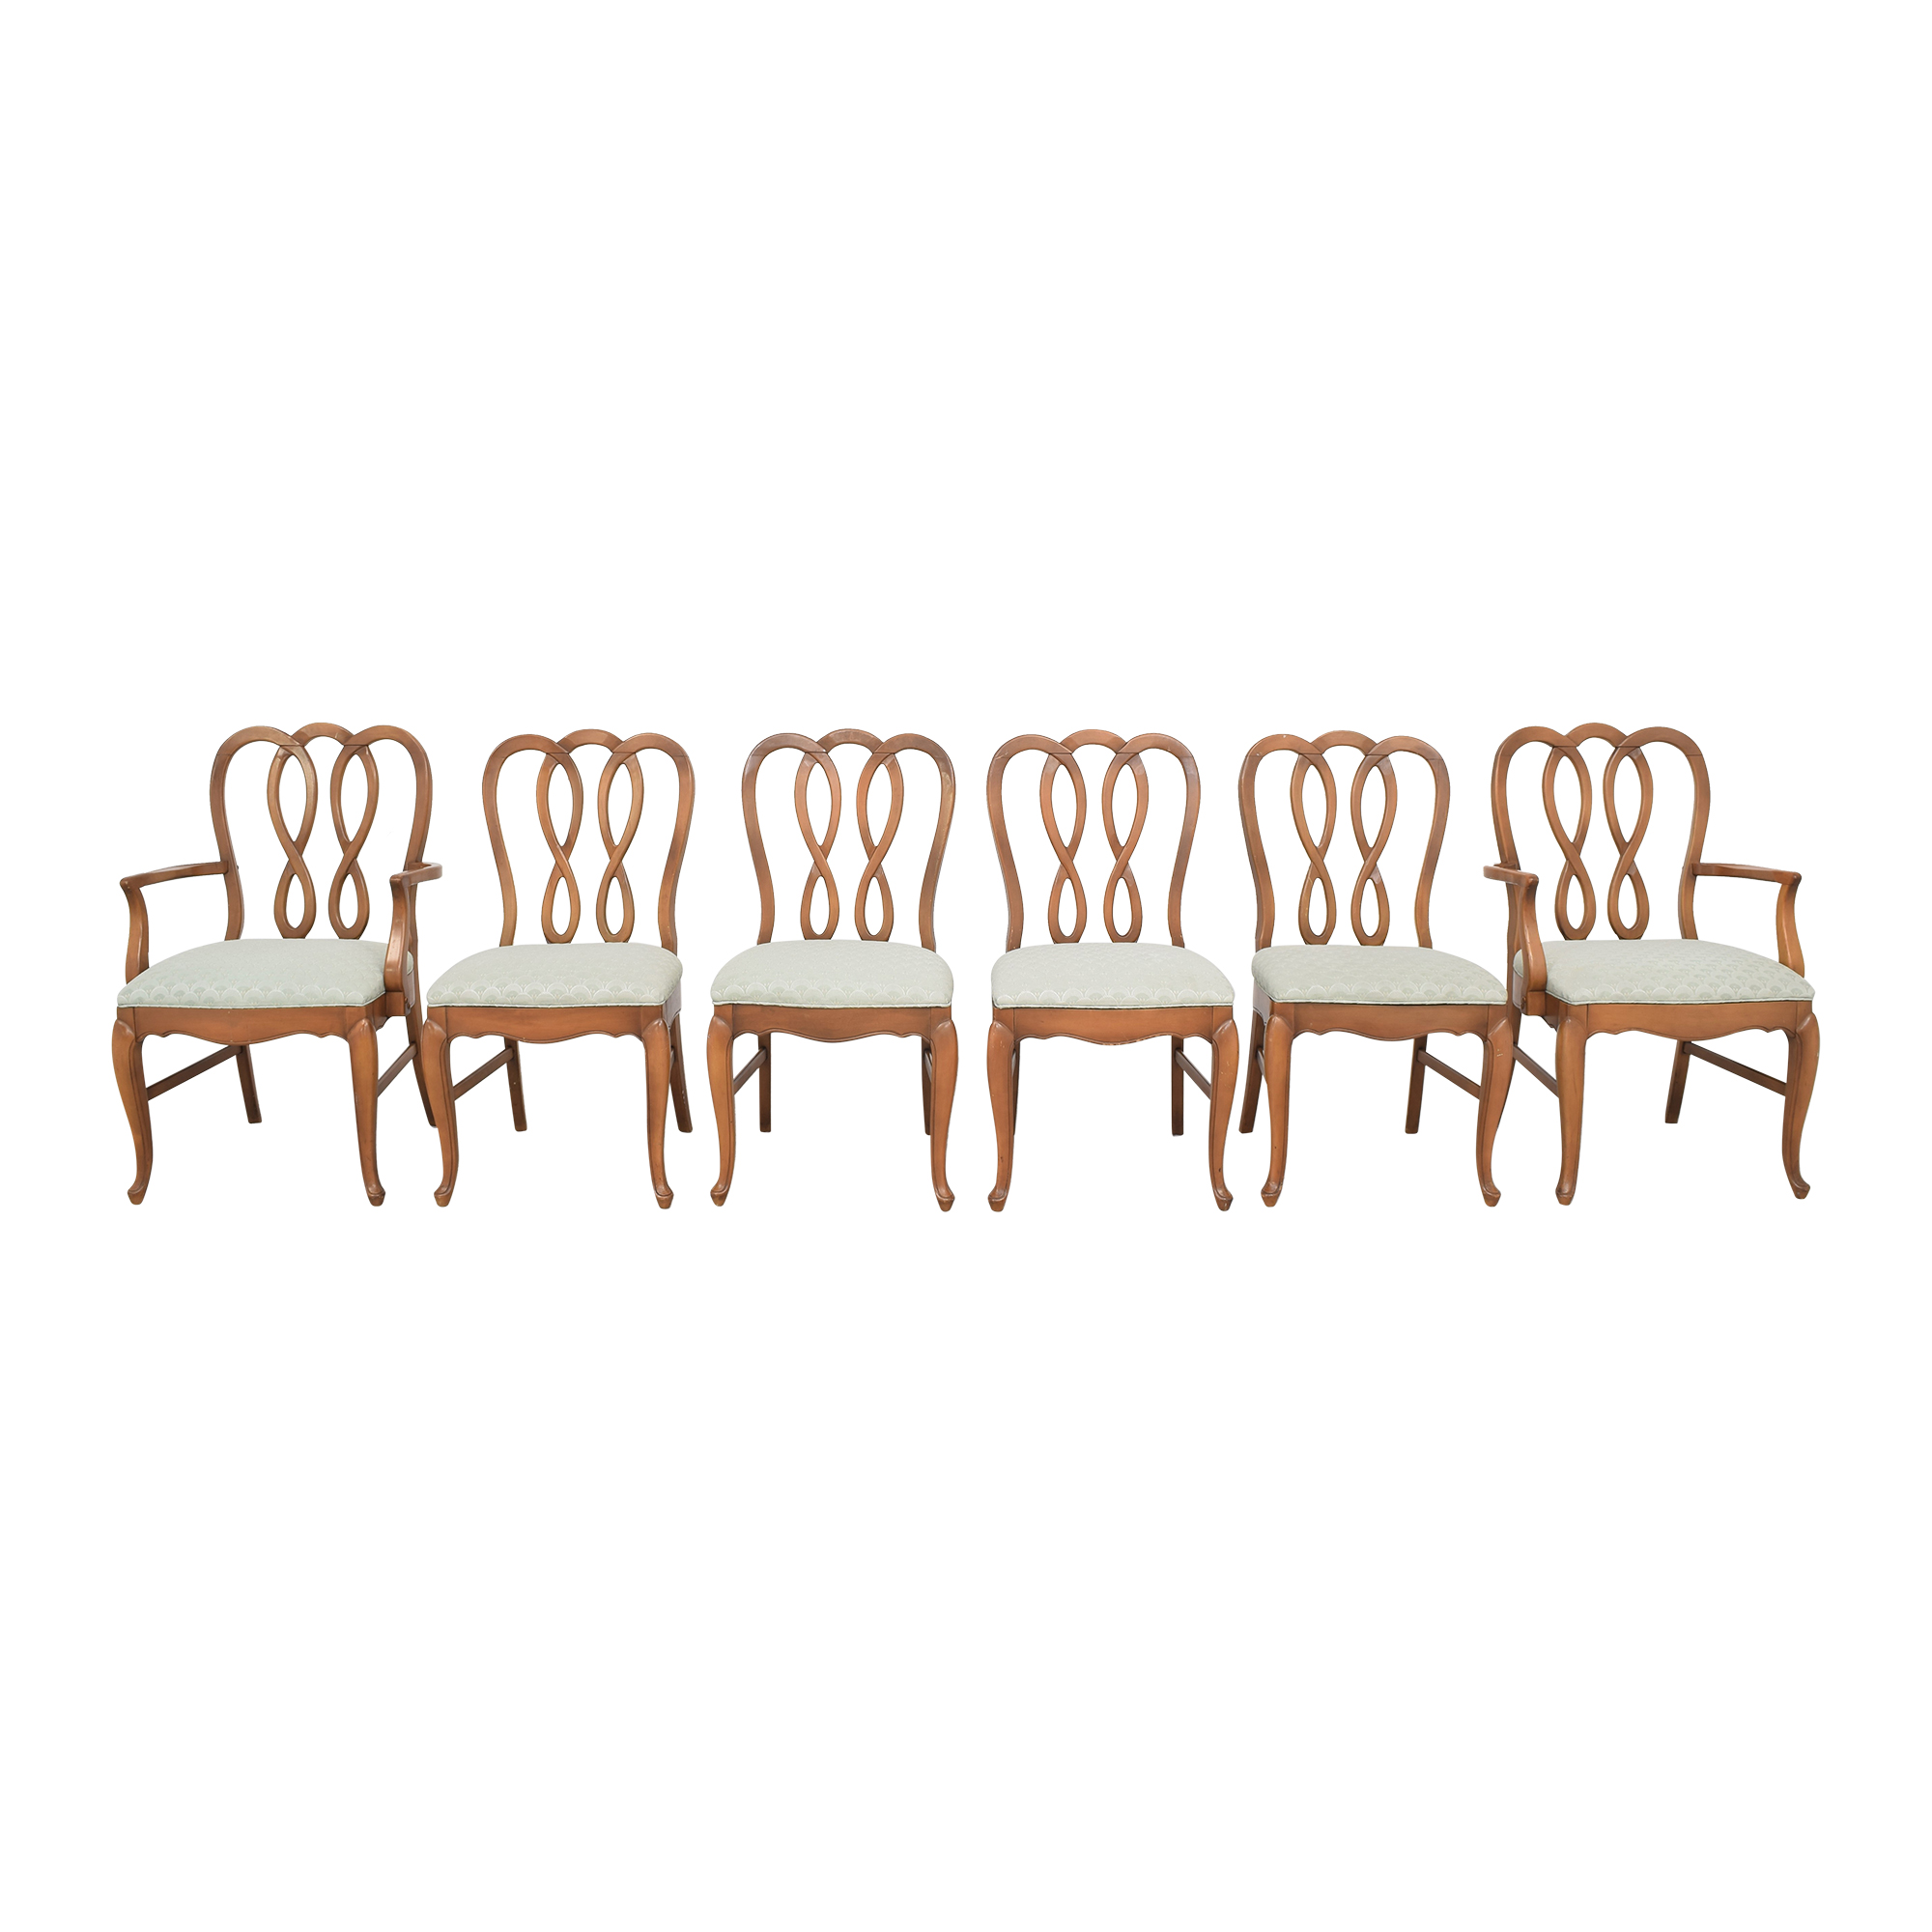 Williams Furniture Williams Furniture Bentwood Style Dining Chairs coupon